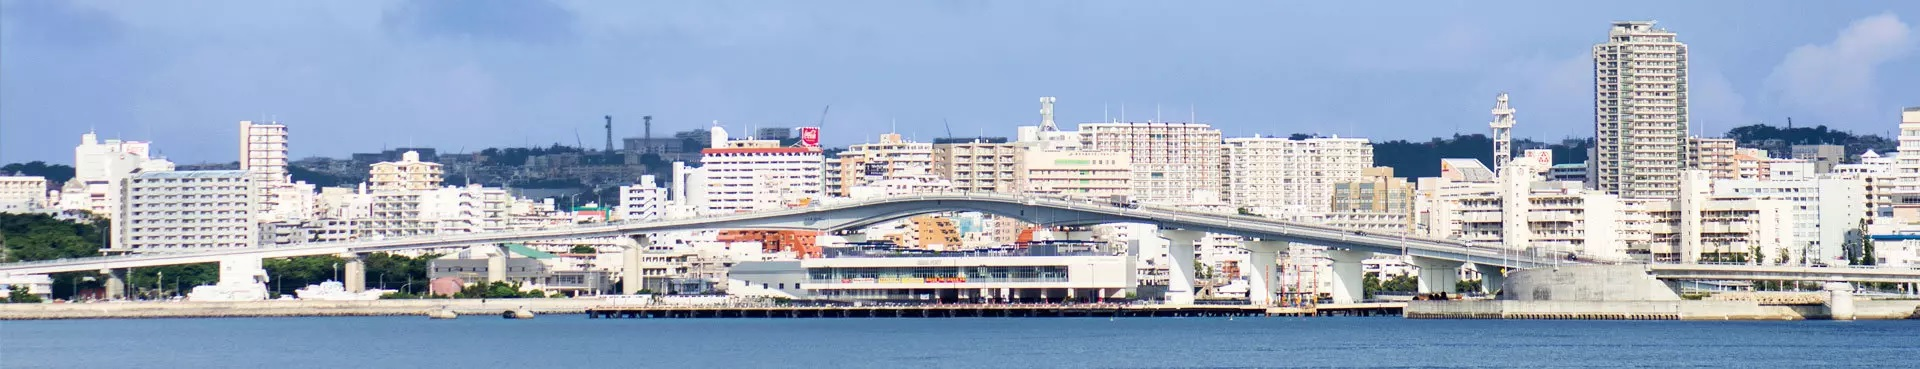 Port at Naha, Japan